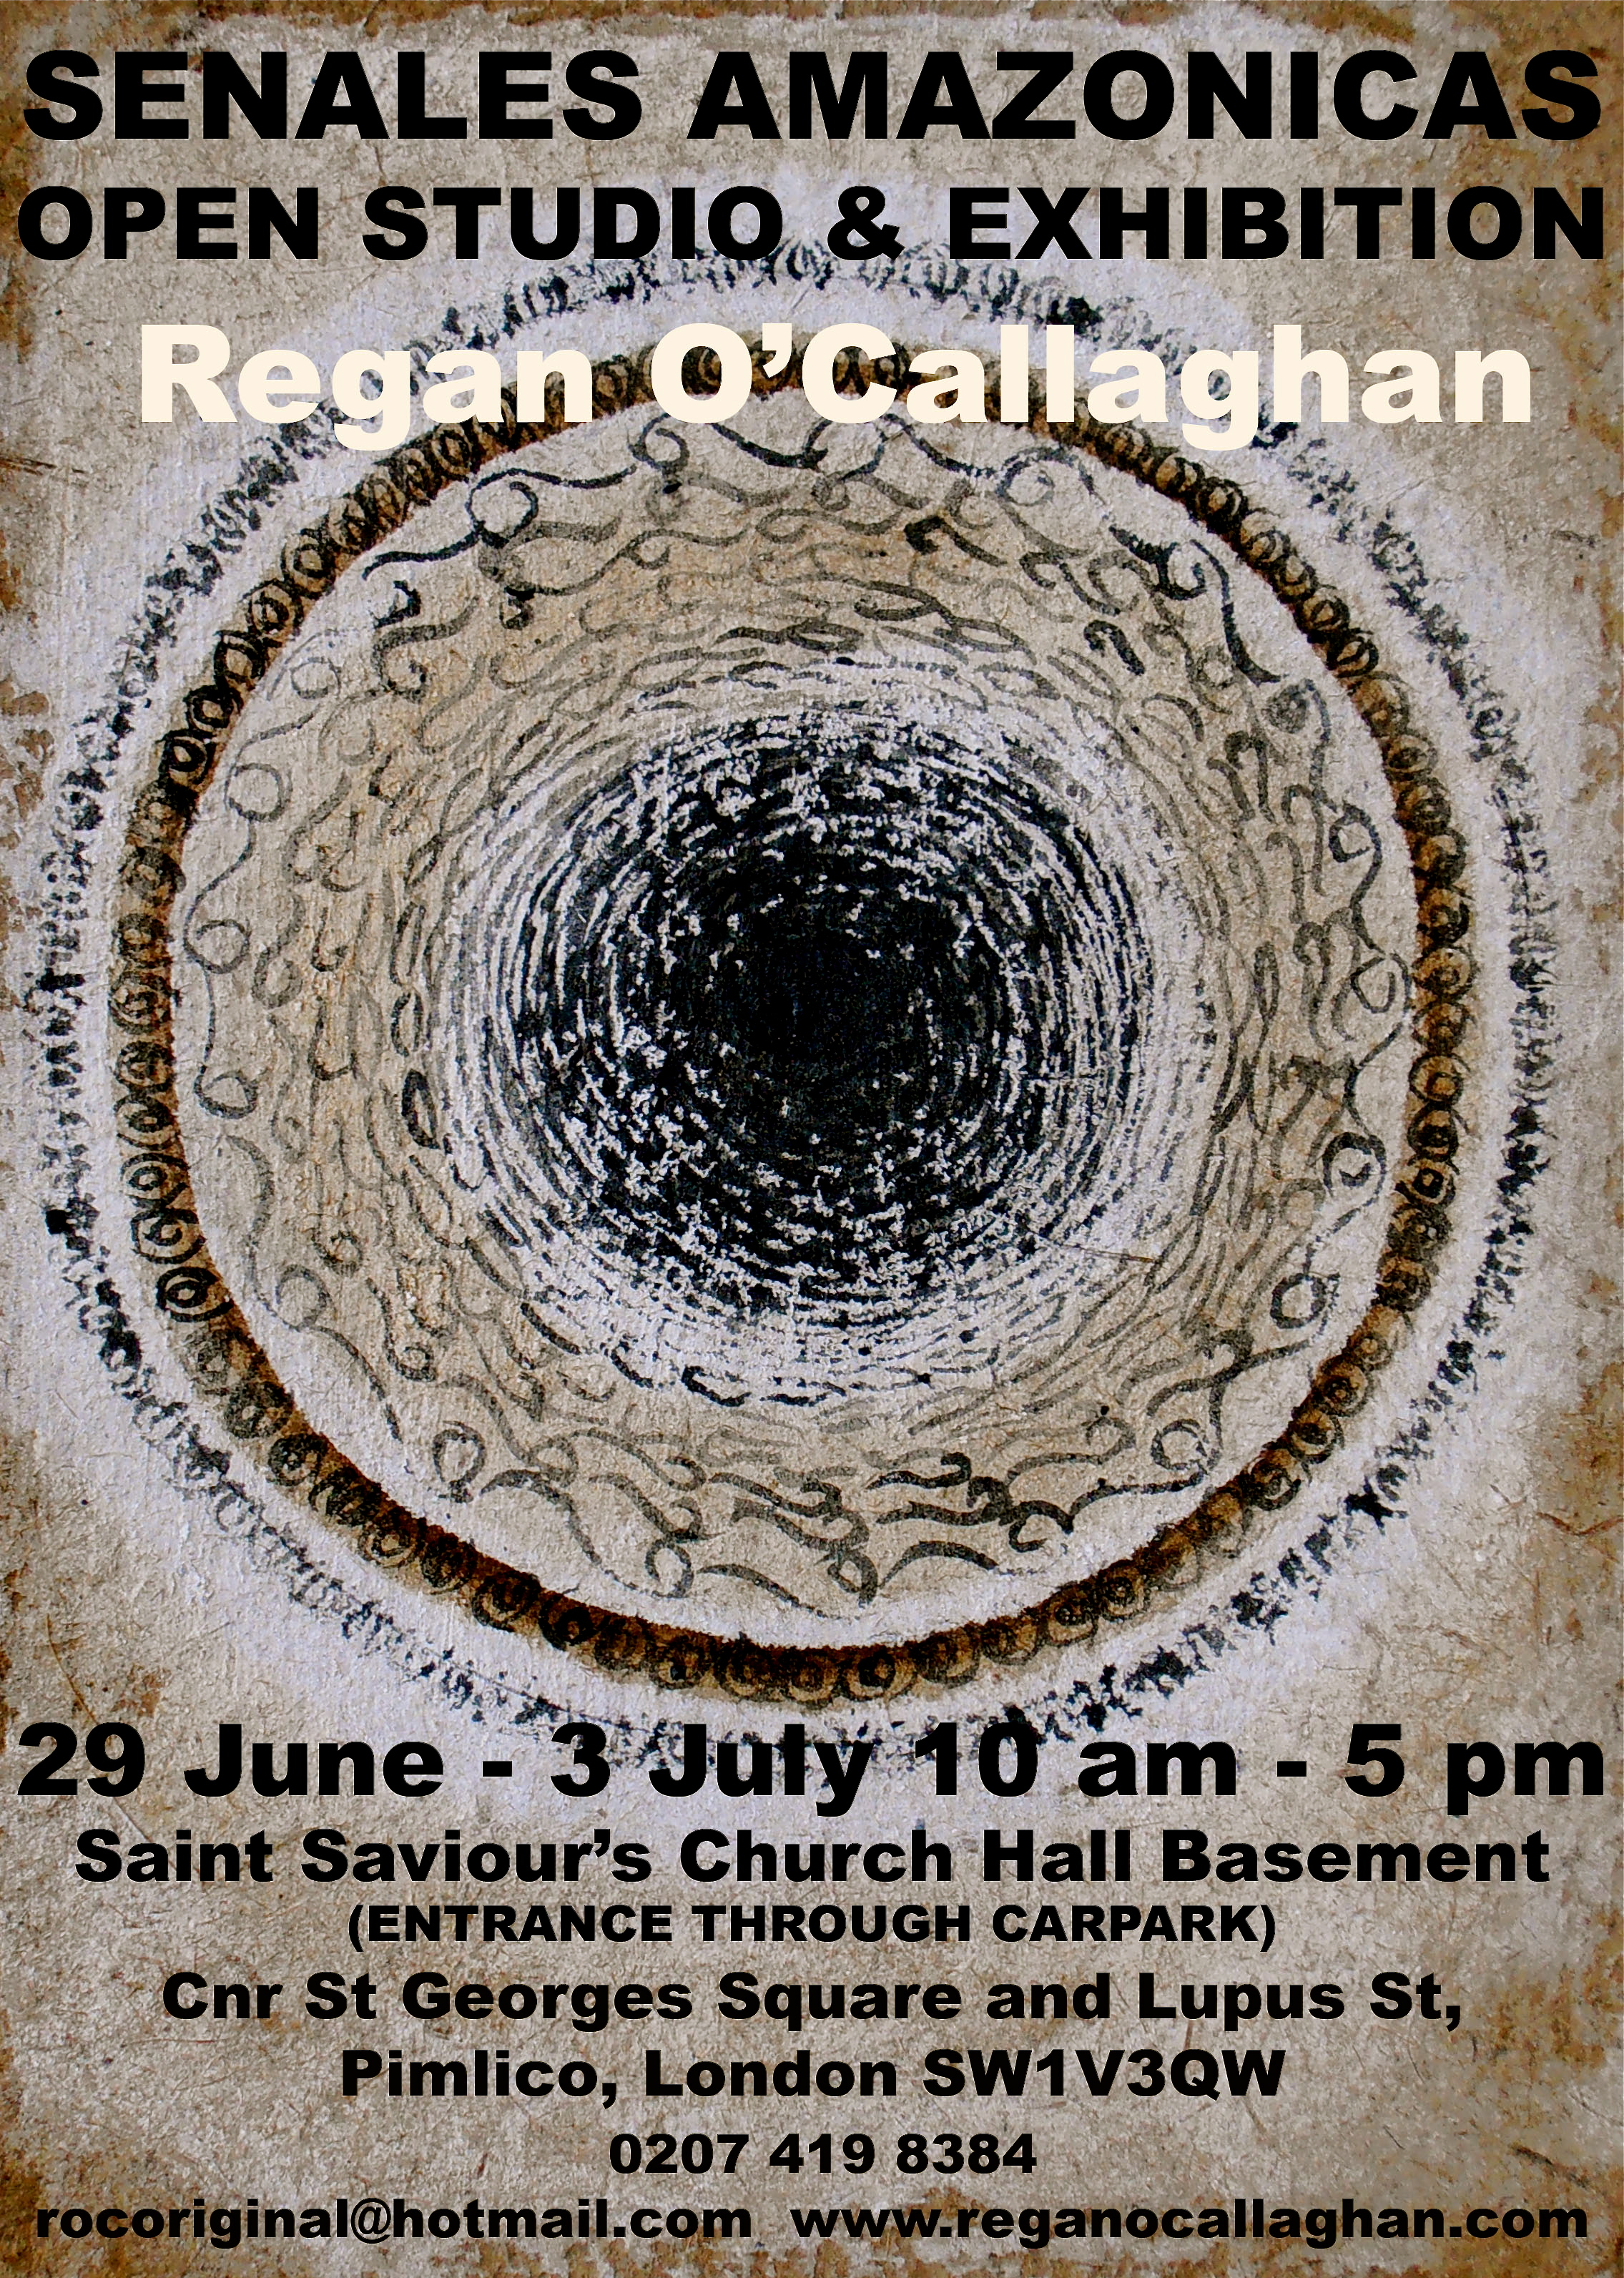 Regan O'Callaghan Senales Flyer, Saudade, aguaje paper, natural pigments, Sachaqa art centre